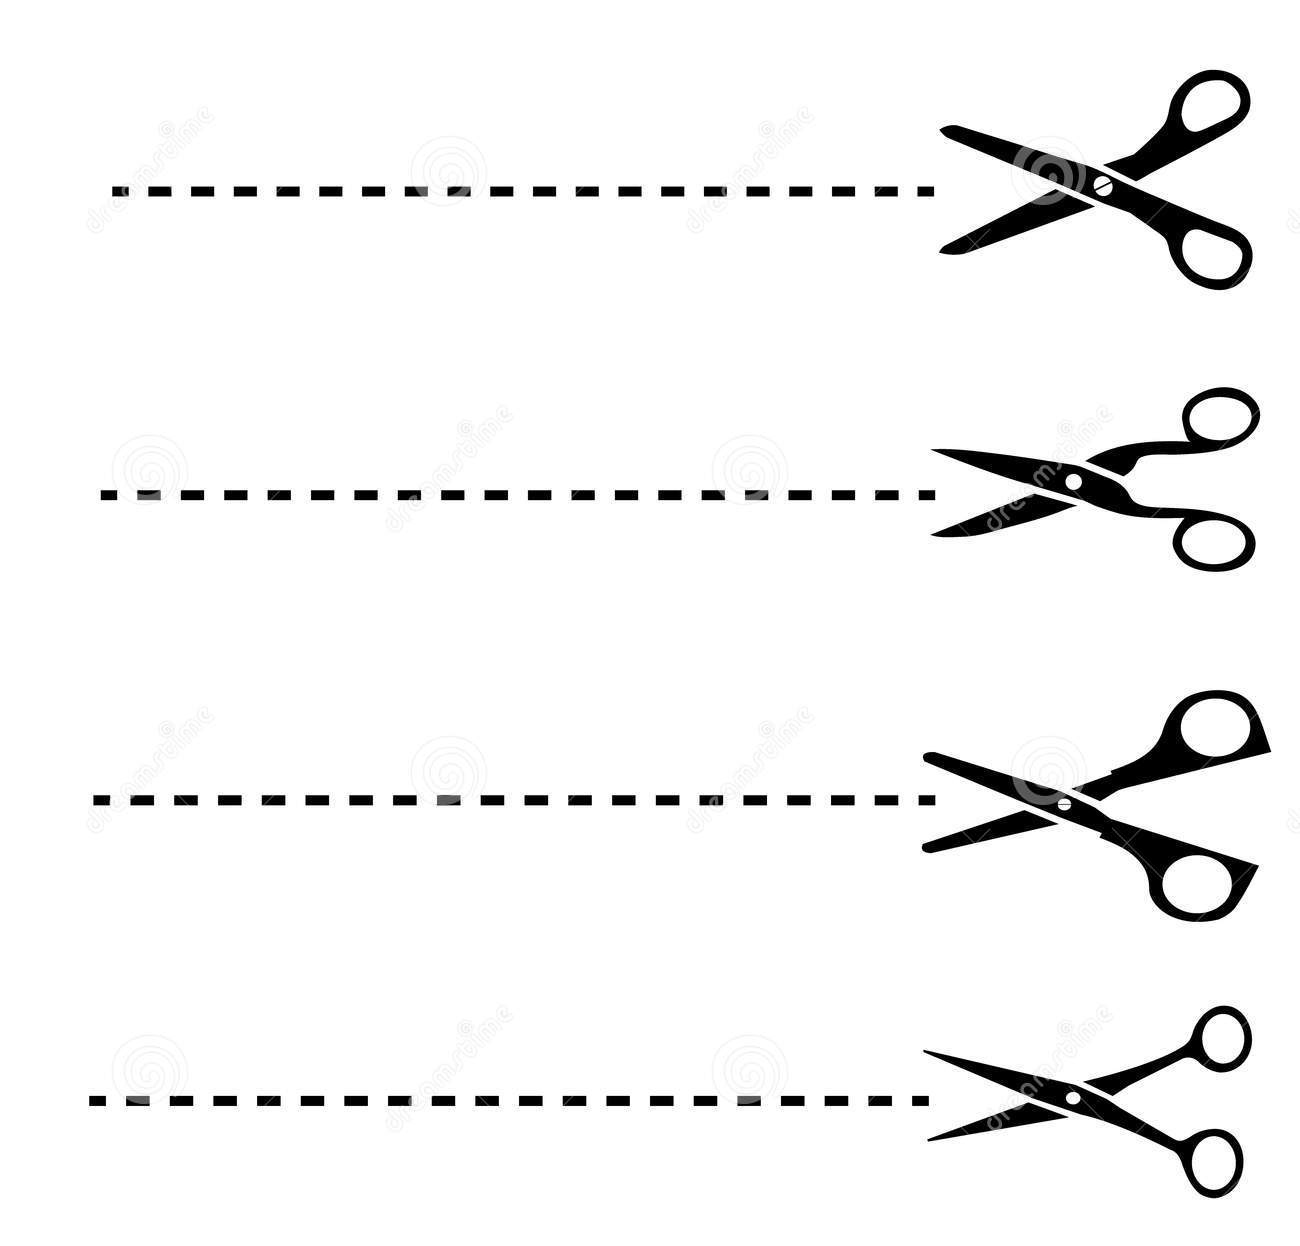 Definition of dotted line usually legal forms have a line where your sign your name if you agree to be bound by the contract. Drawing Stitched Dashed Or Dotted Lines